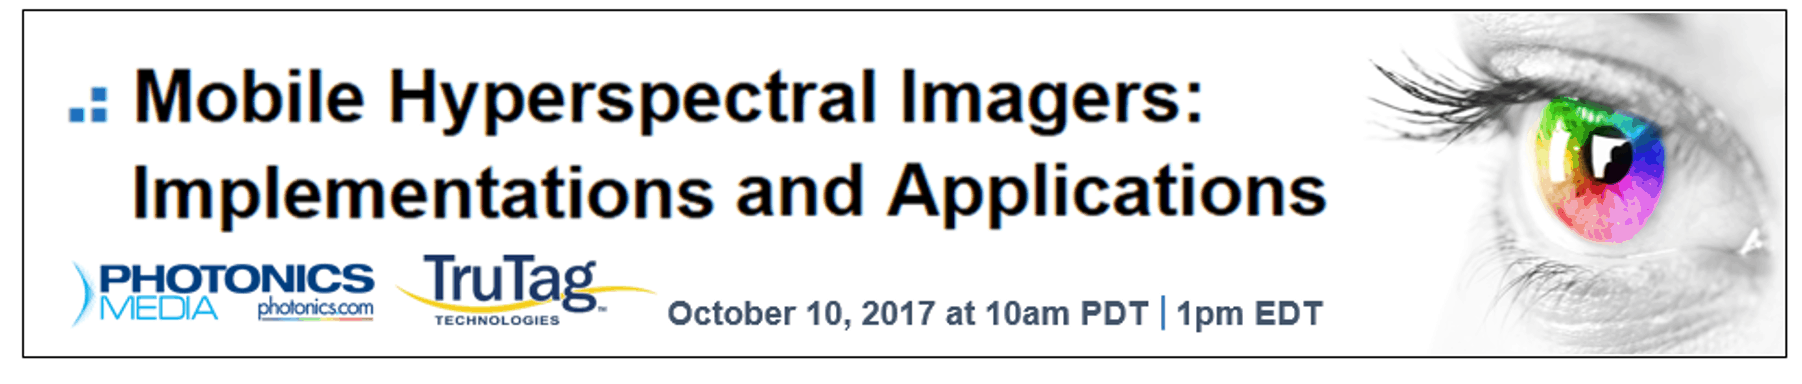 Mobile Hyperspectral Imagers: Implementations and Applications